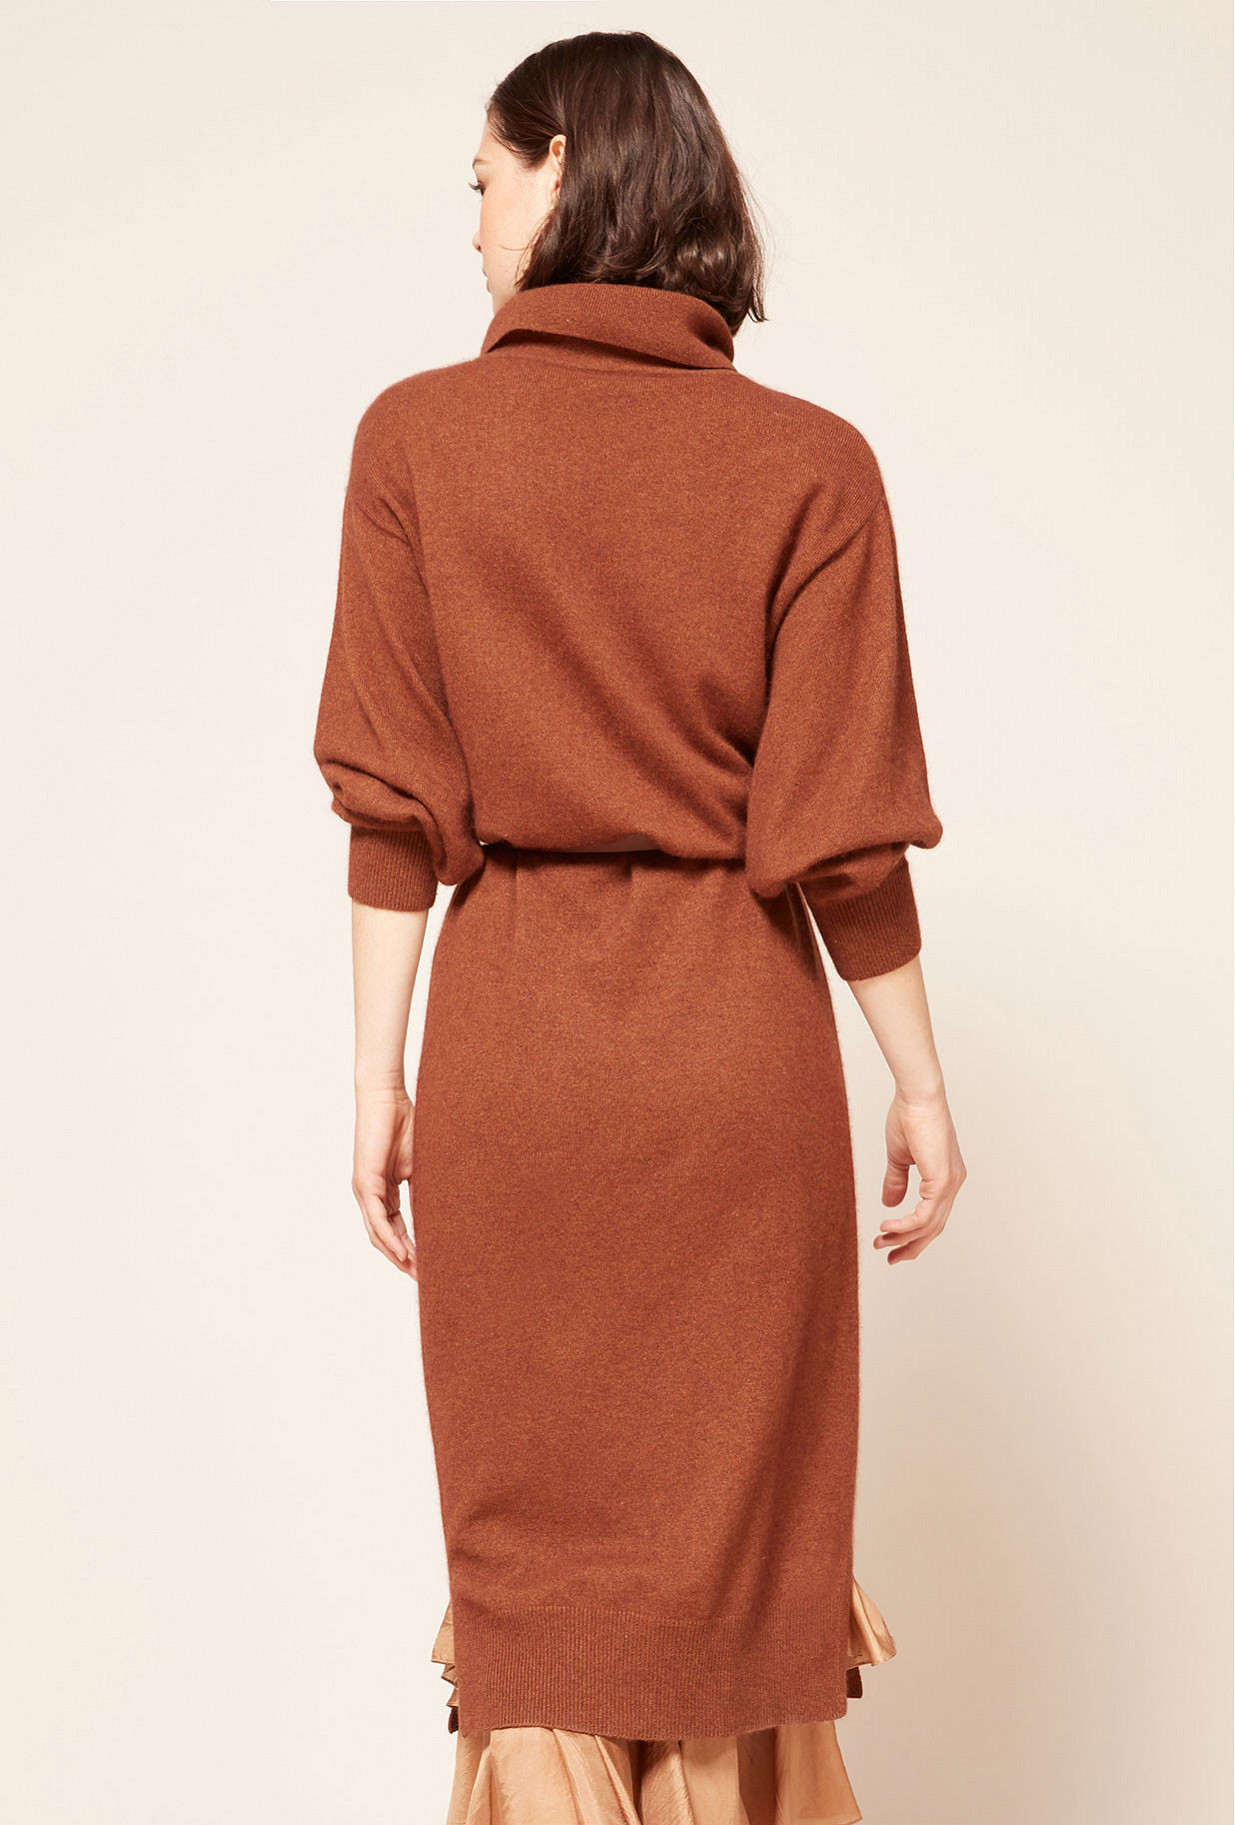 Robe Marron  Calabria mes demoiselles paris vêtement femme paris